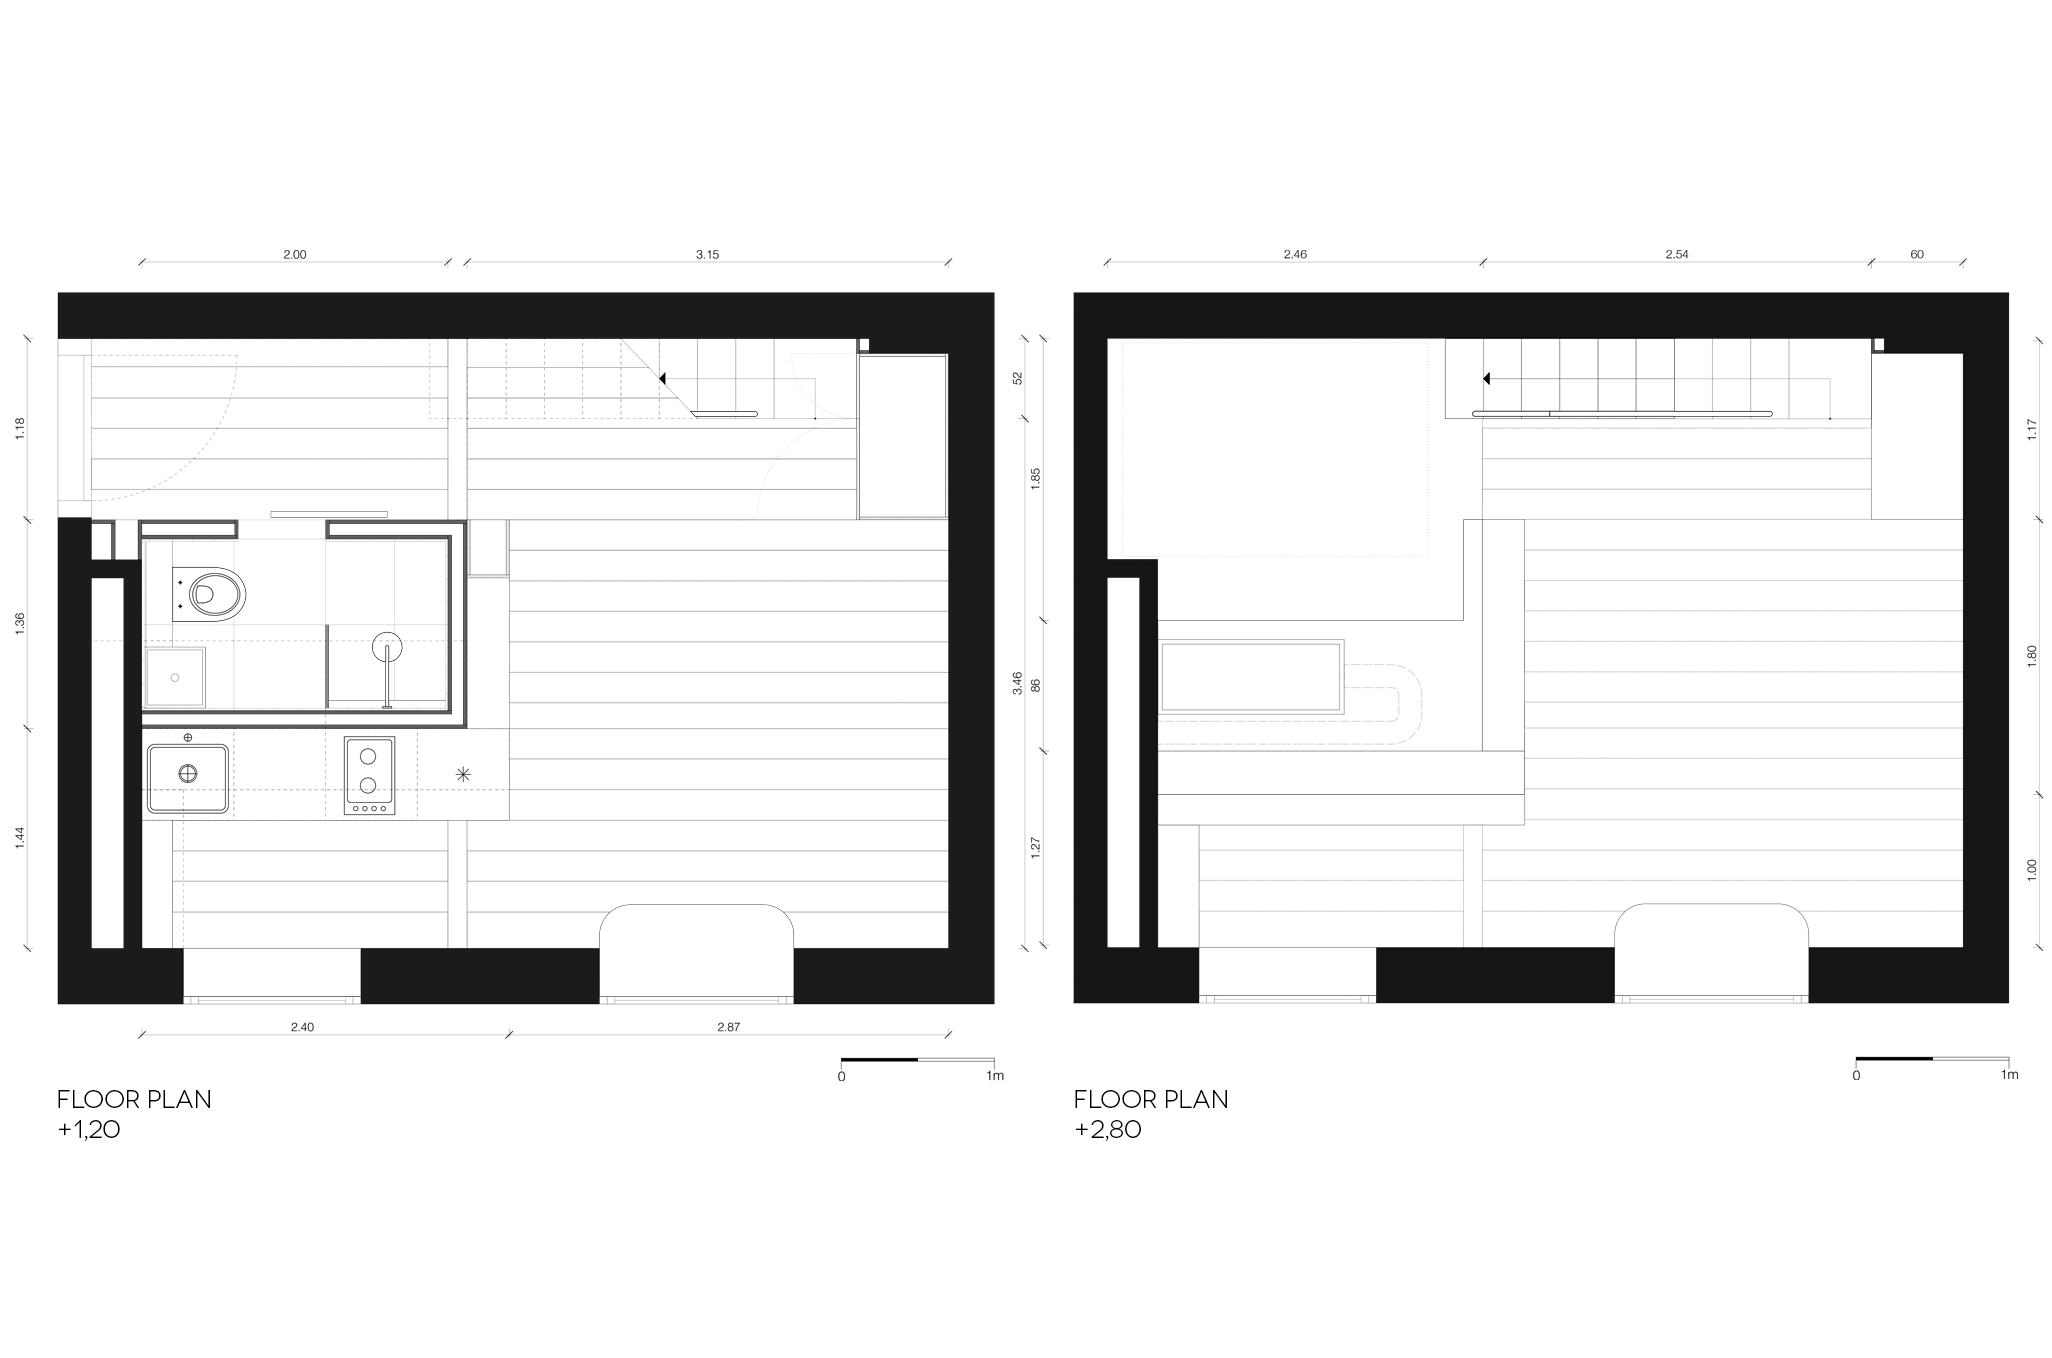 Paola_Bagna_Refurbishment_Micro_Apartment_Berlin_Moabit_plan_1